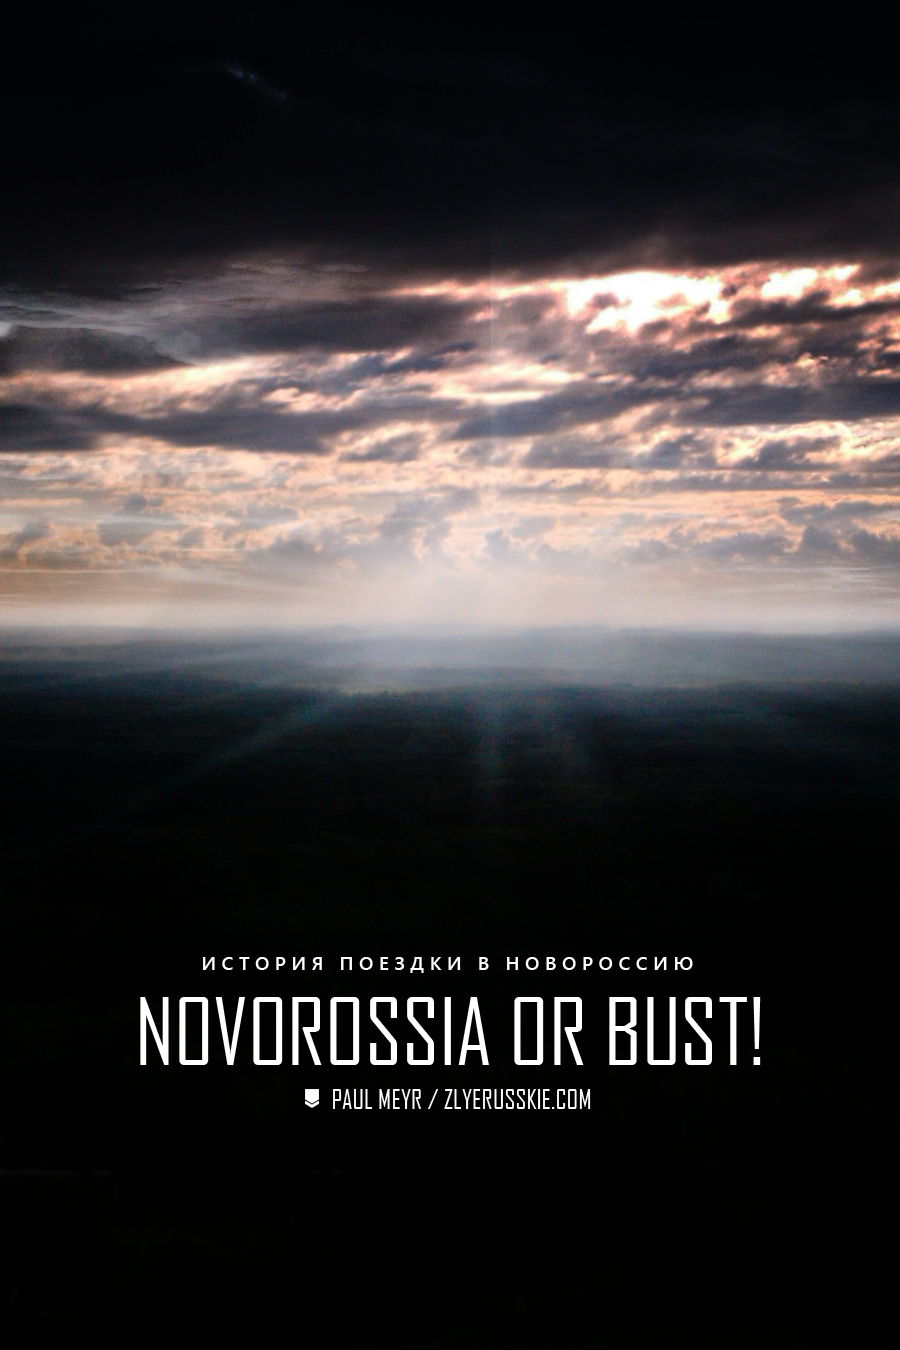 Novorossia or bust!